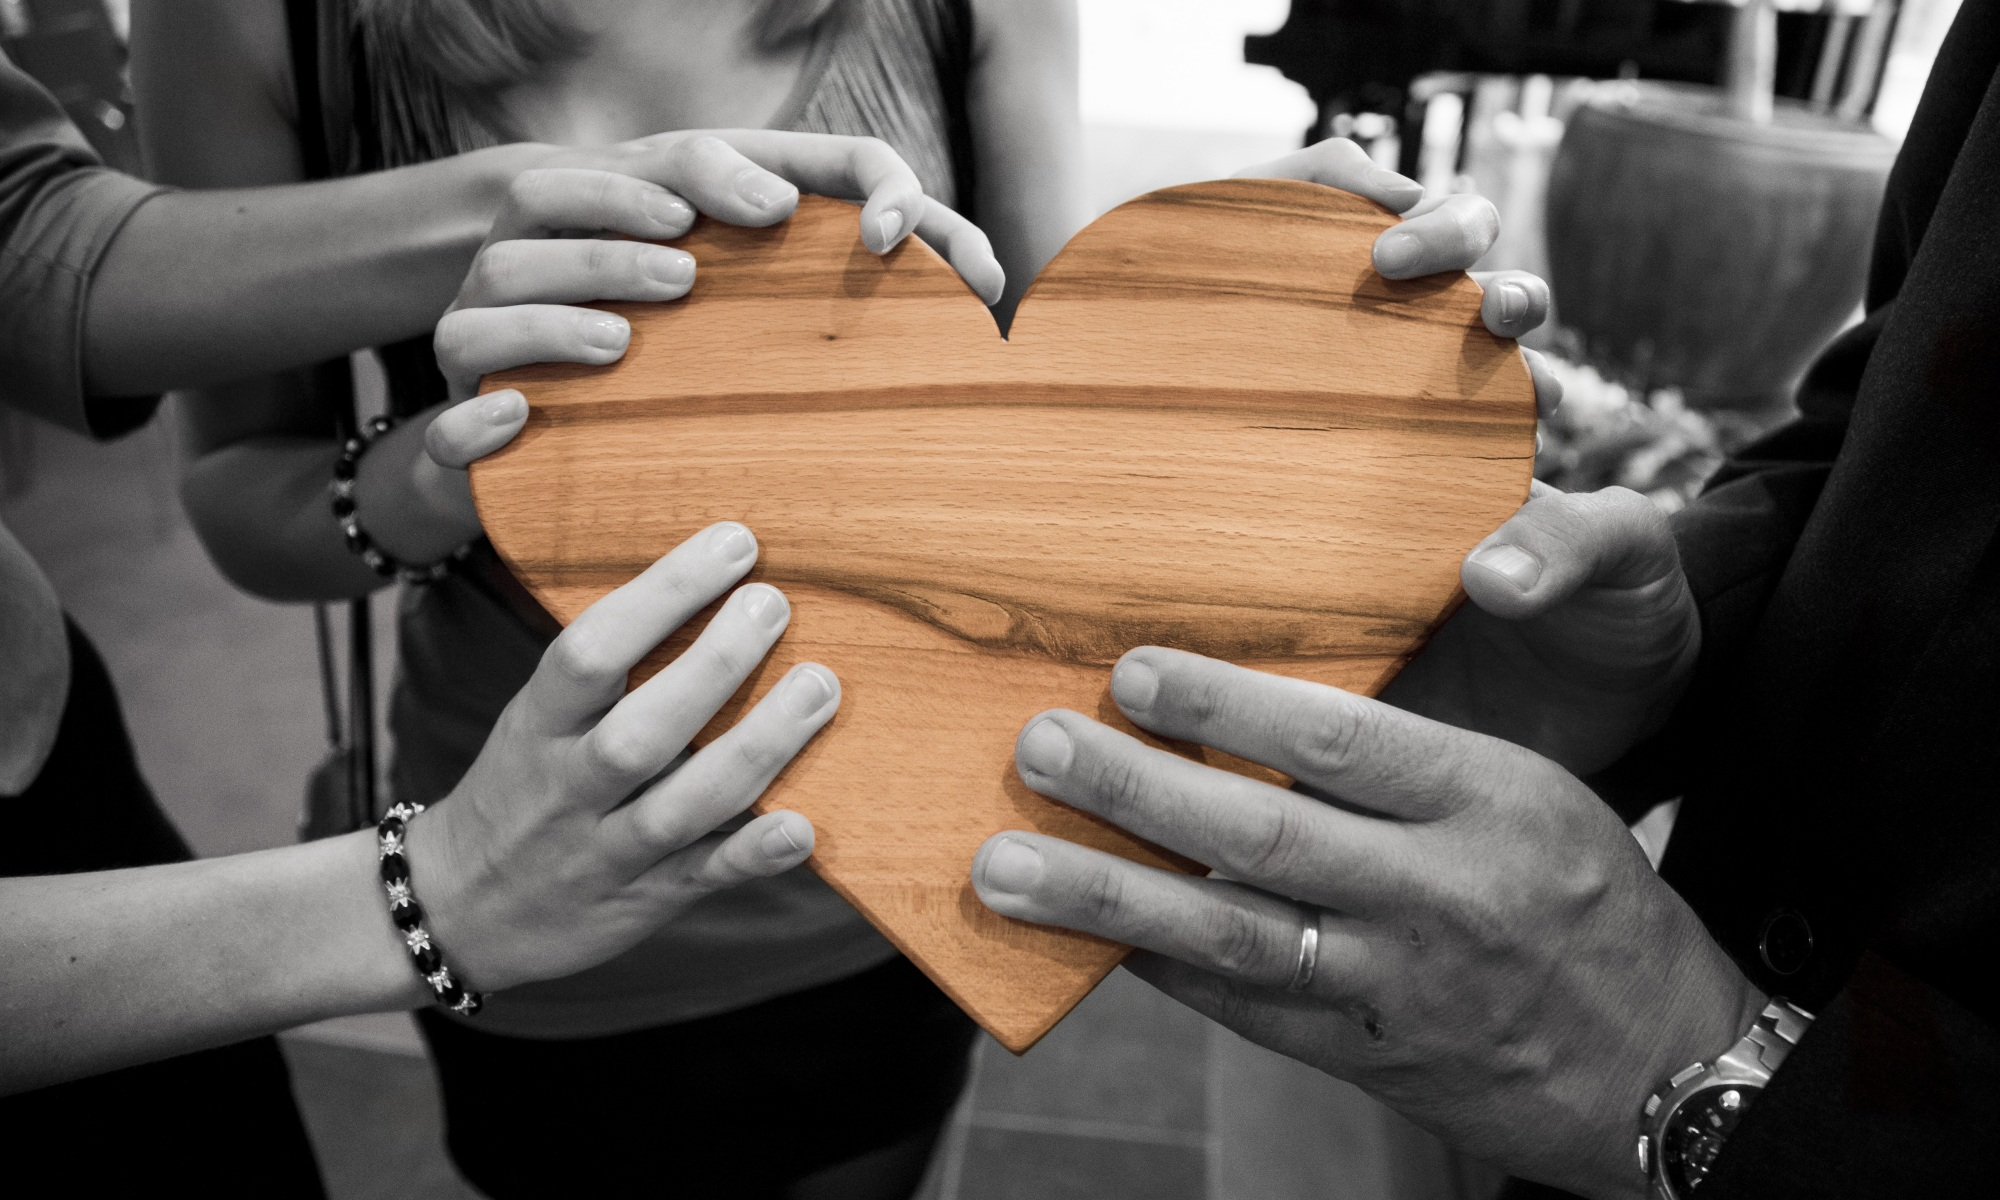 Hands holding onto wooden heart object